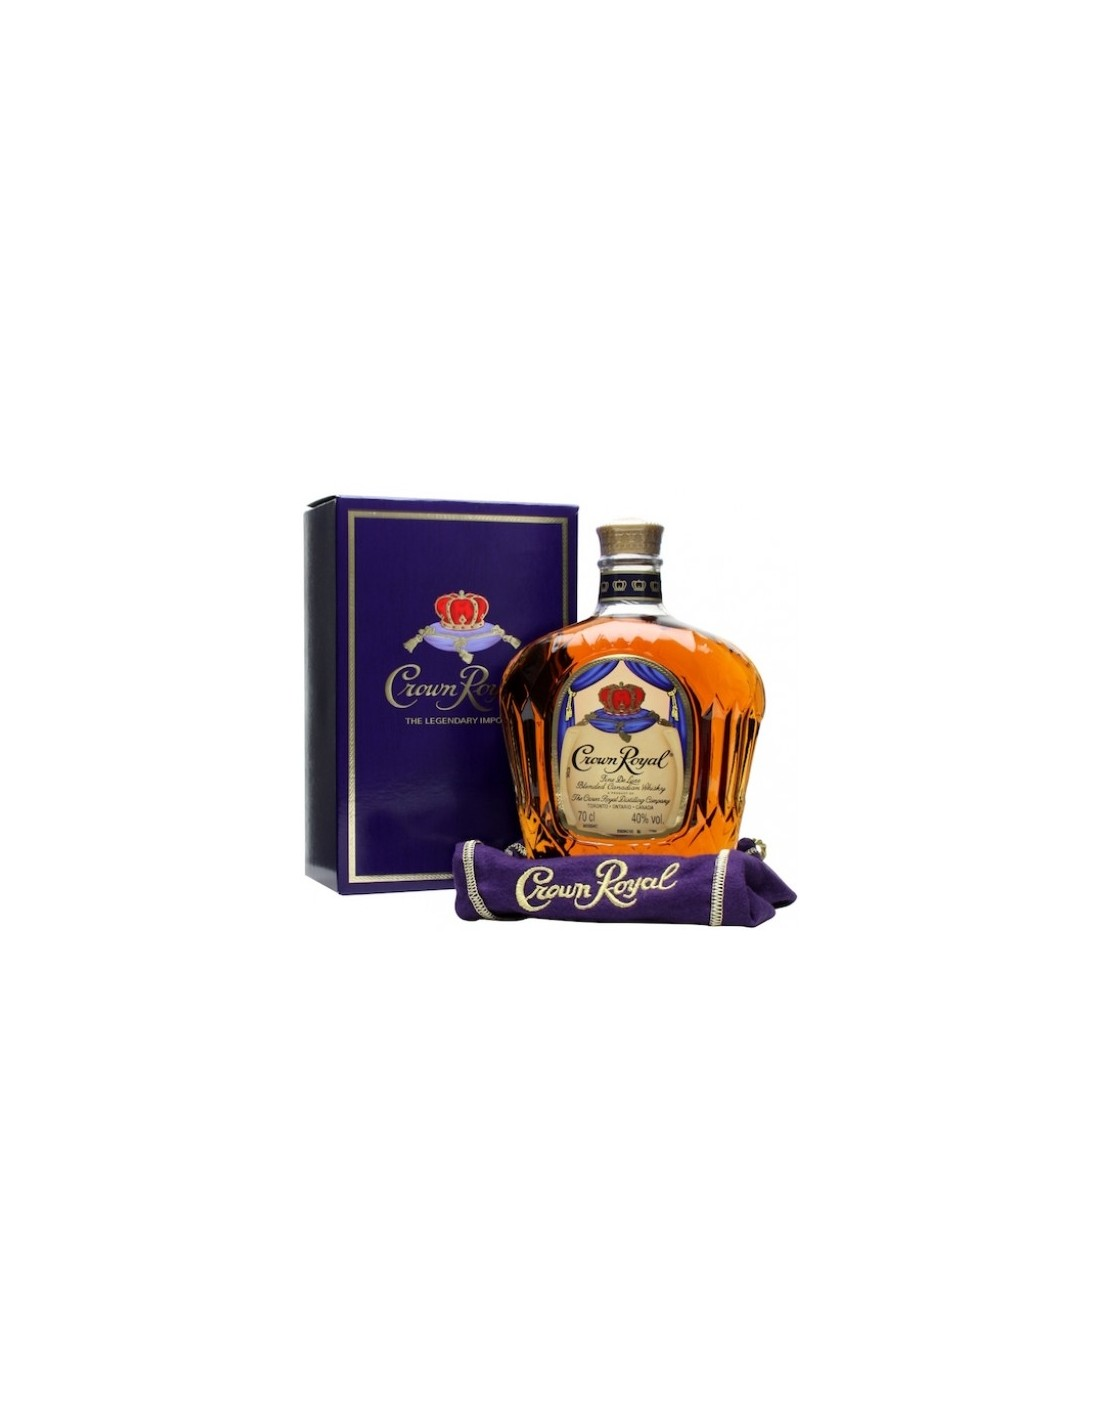 Blended Whisky Crown Royal, 40% alc., 0.7L, Canada